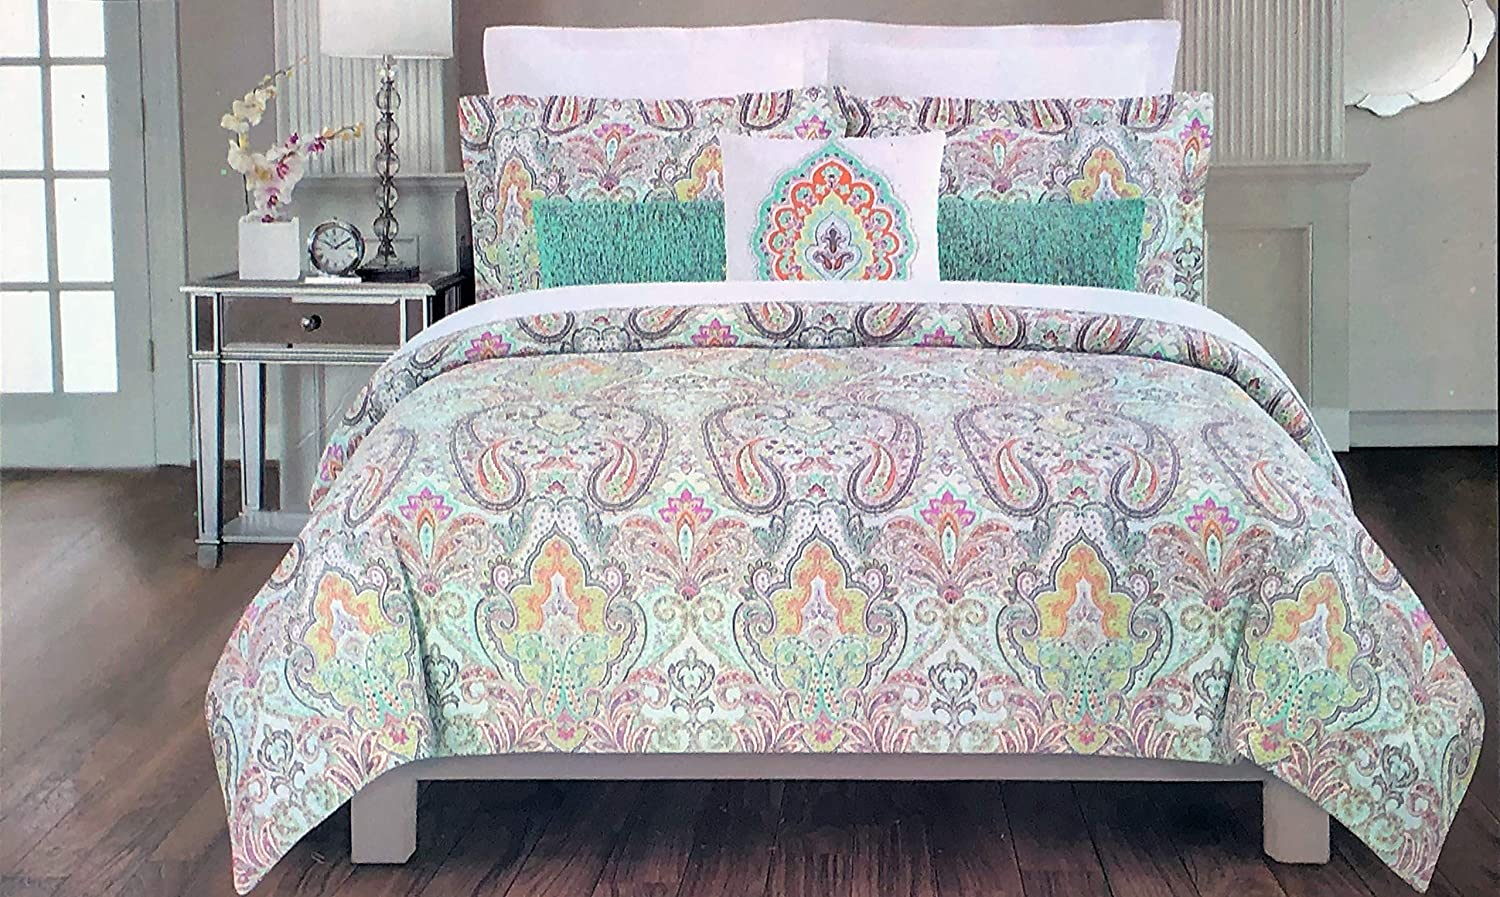 Cynthia Rowley New York 3pc Duvet Set Duvet Quilt Cover Bohemian Style Exotic Colorful Paisley Damask Medallion Print 100% Cotton 3 Piece Bedding Set, Evelyn Bright (Full/Queen)